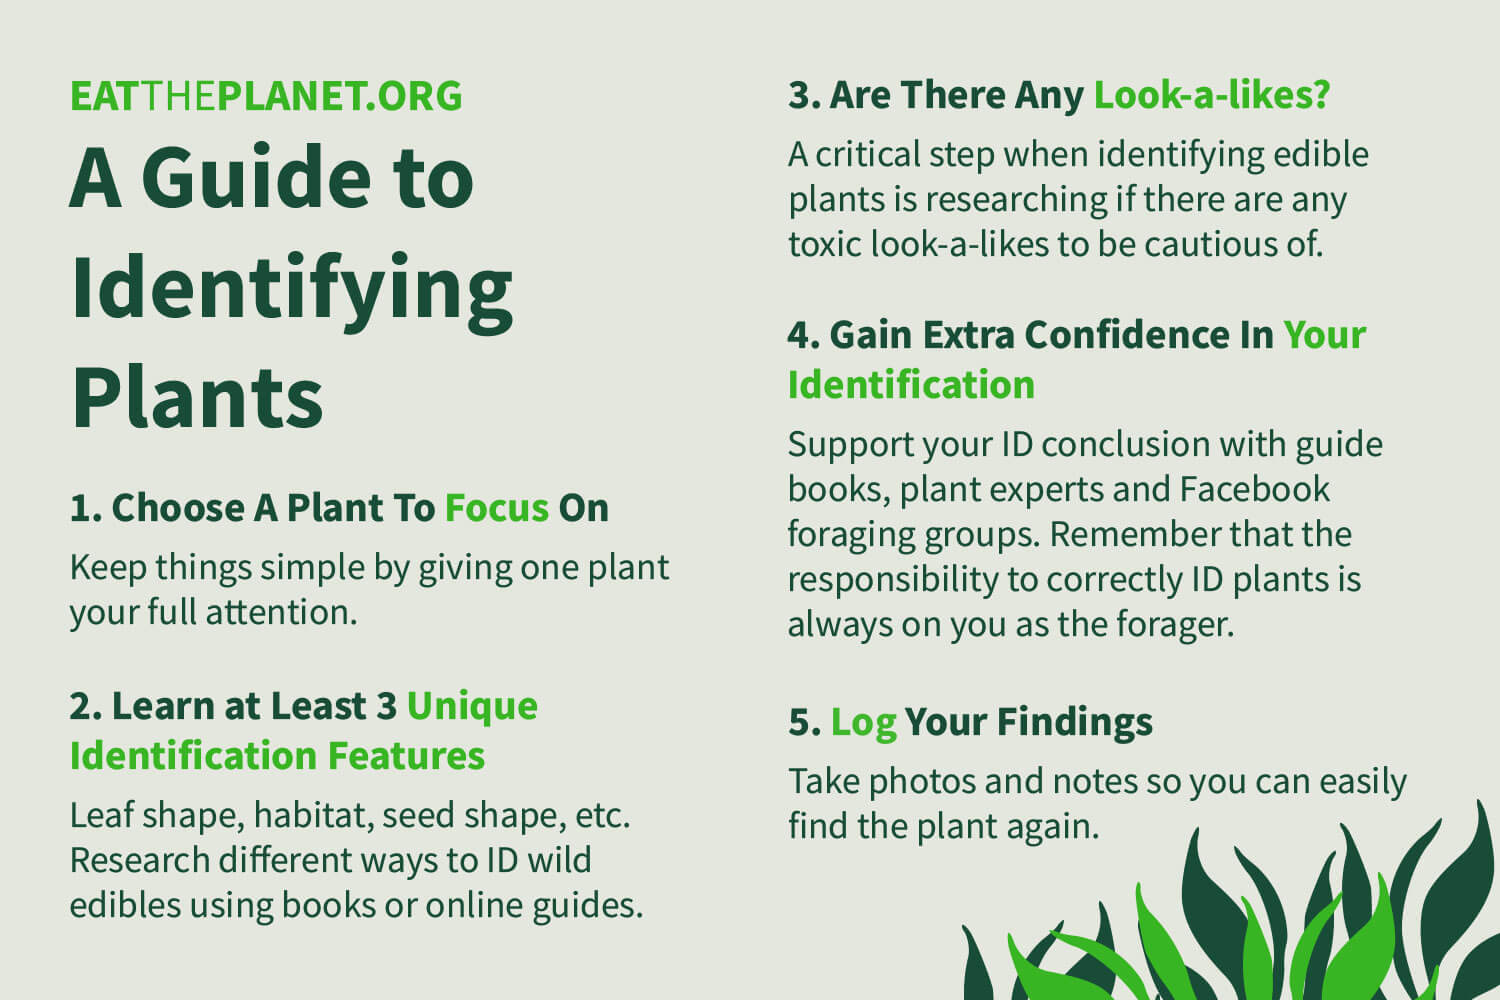 A concise graphic outlining 5 steps that can be used to identify plants.